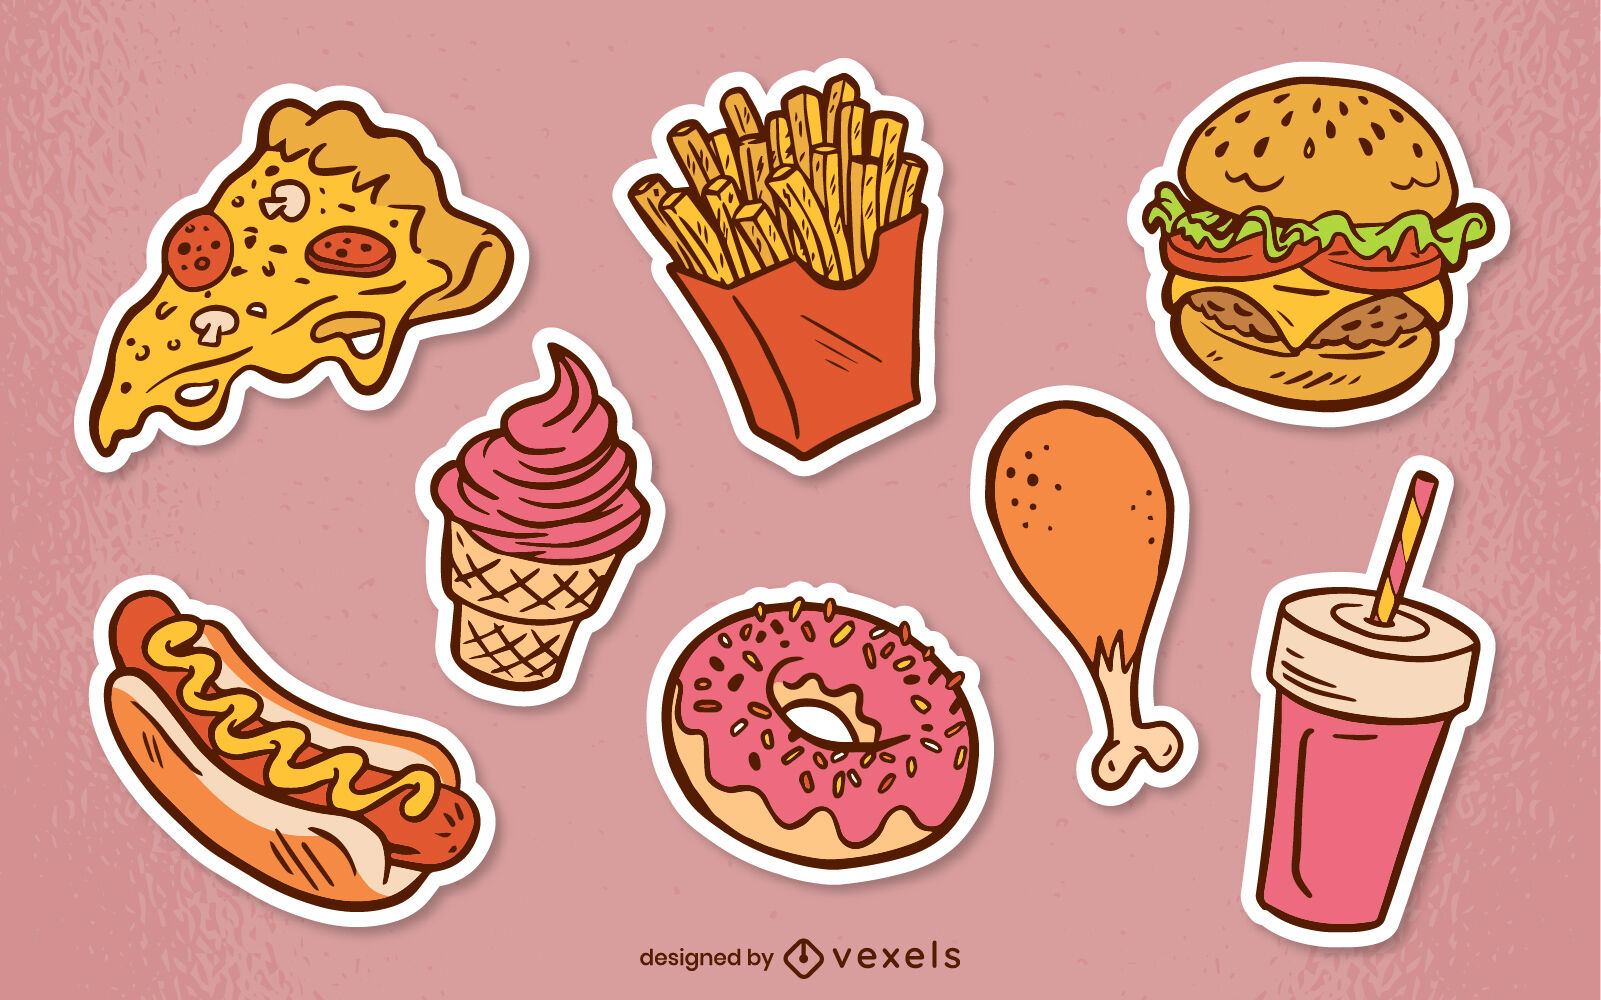 Fast food delicious meal sticker set